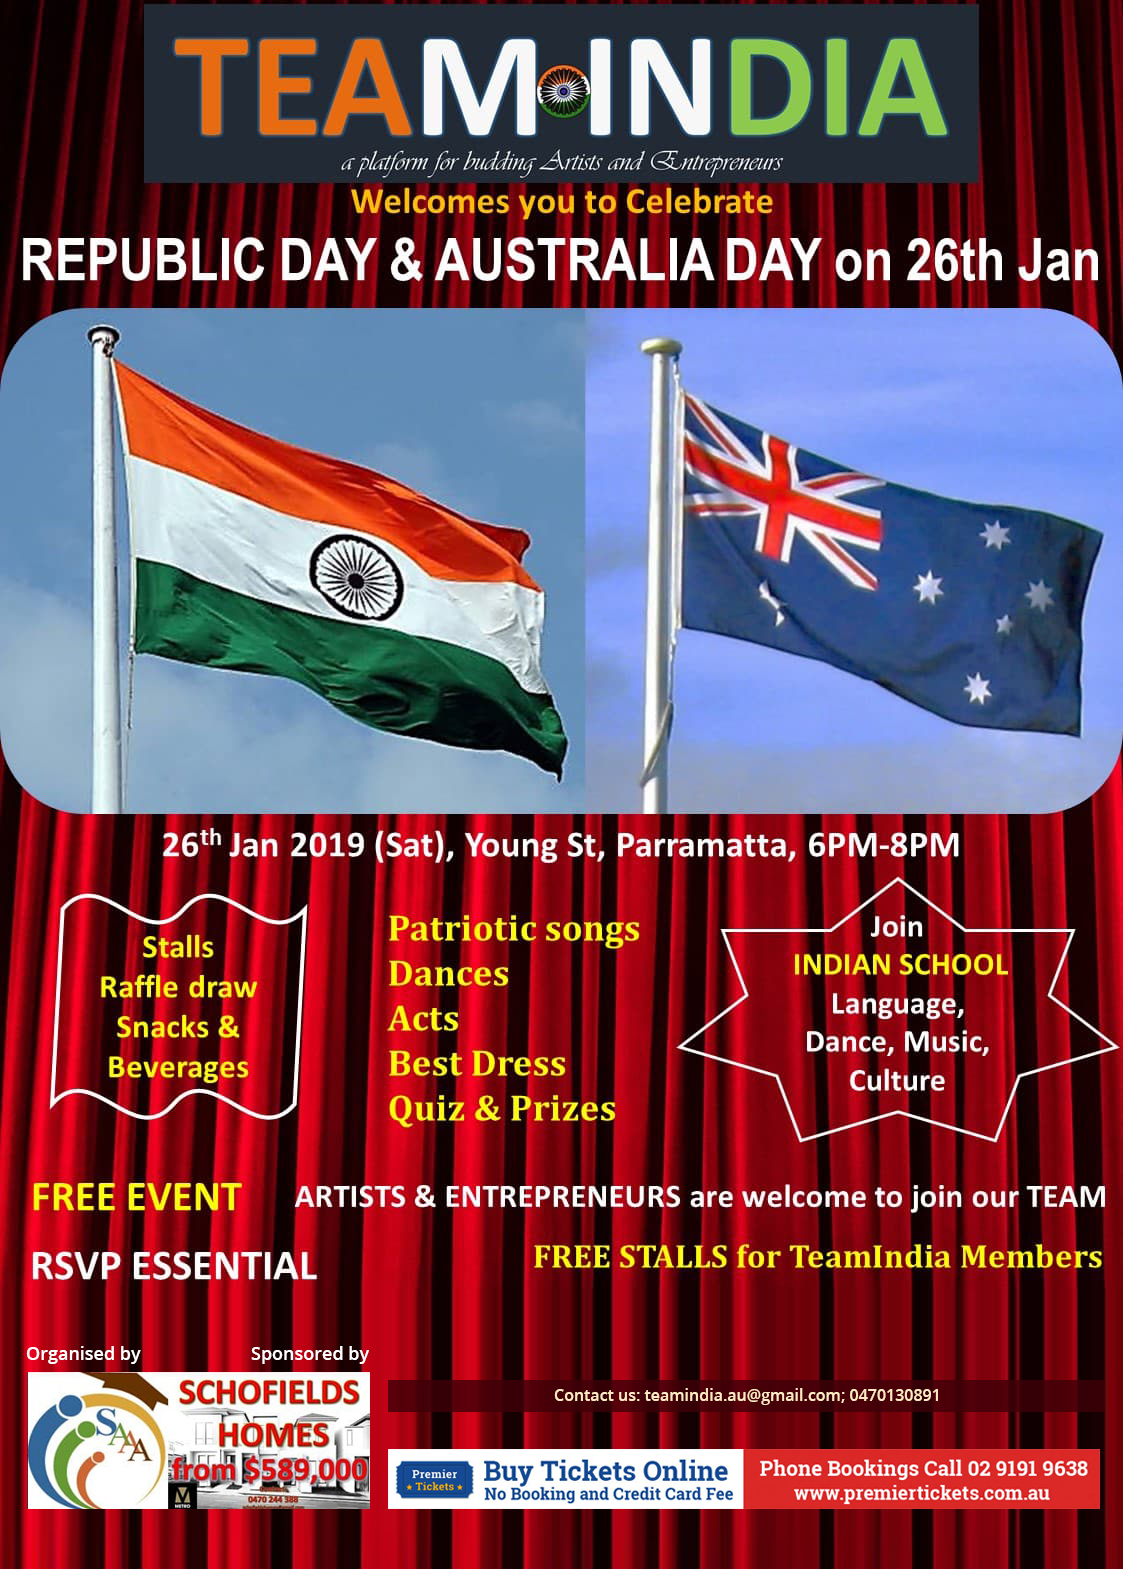 Republic Day and Australia Day – Free Entry